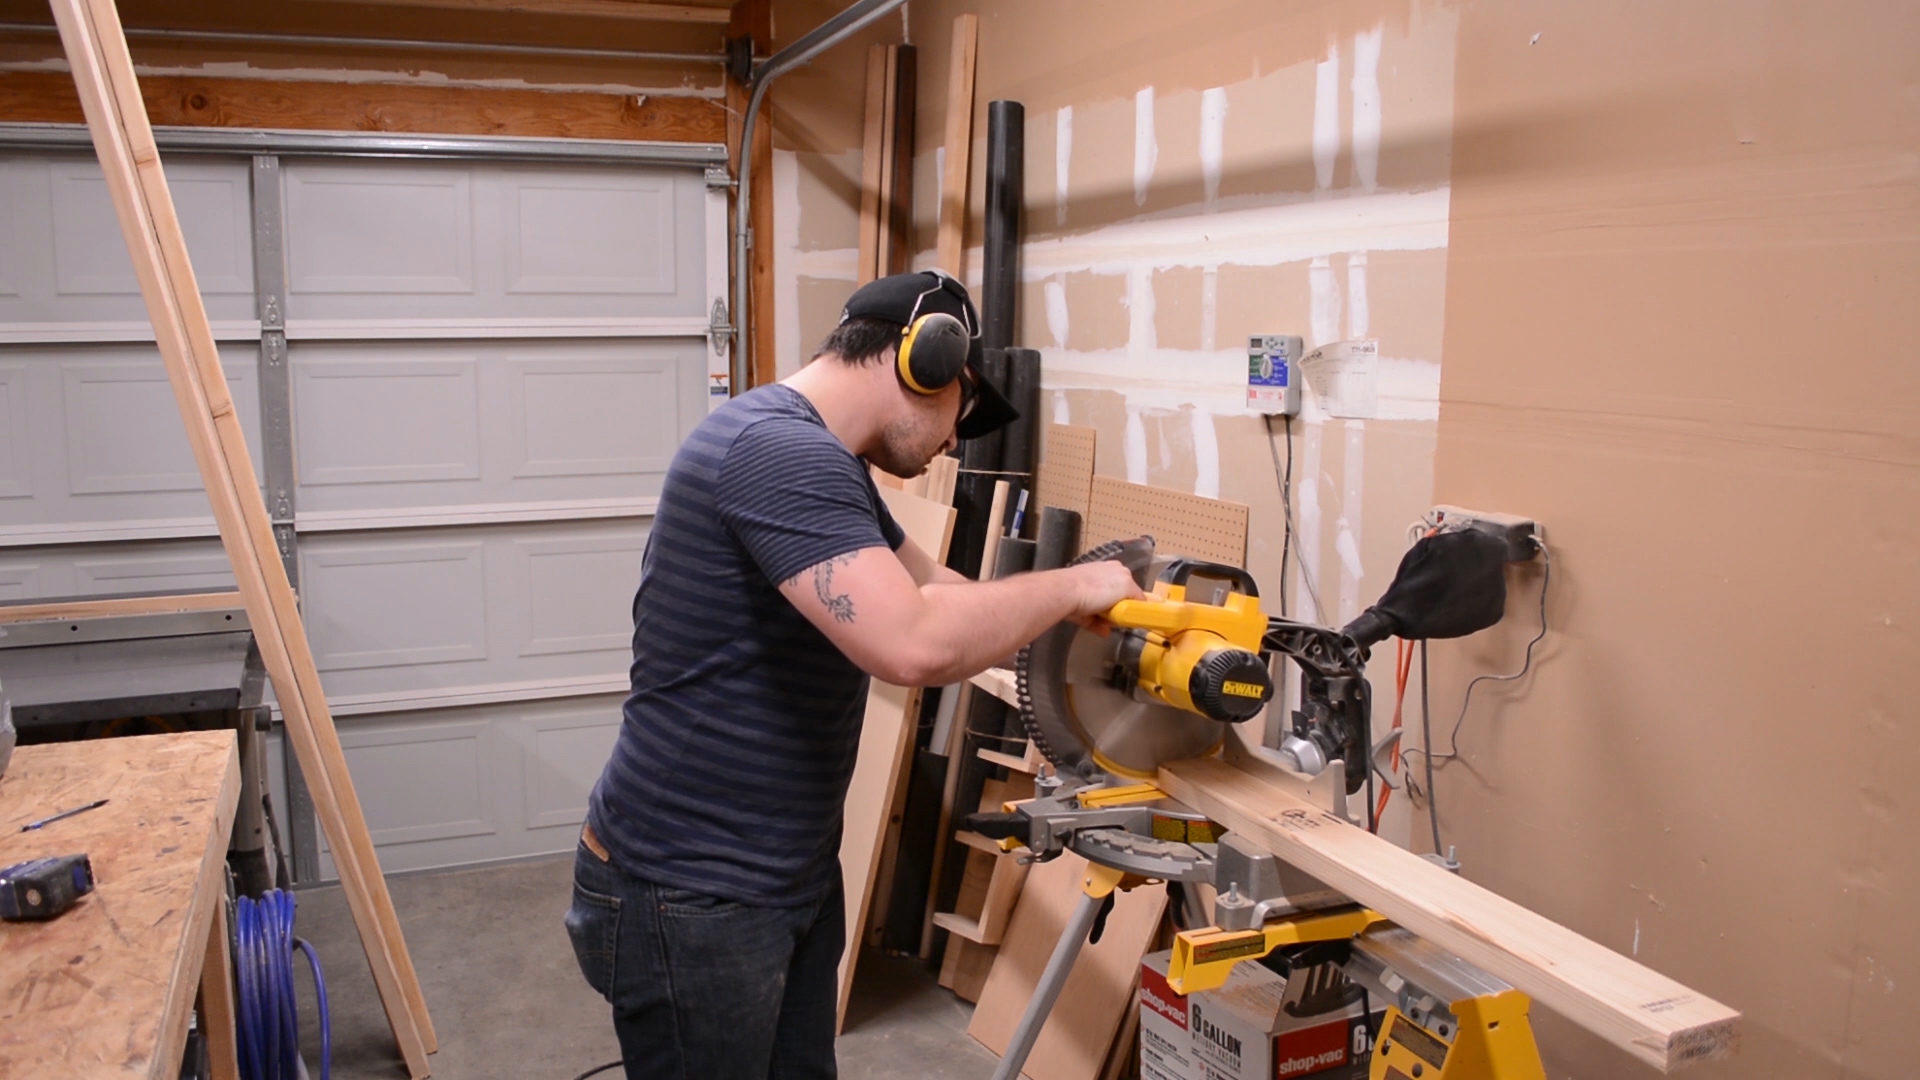 Cutting dimensional lumber to length